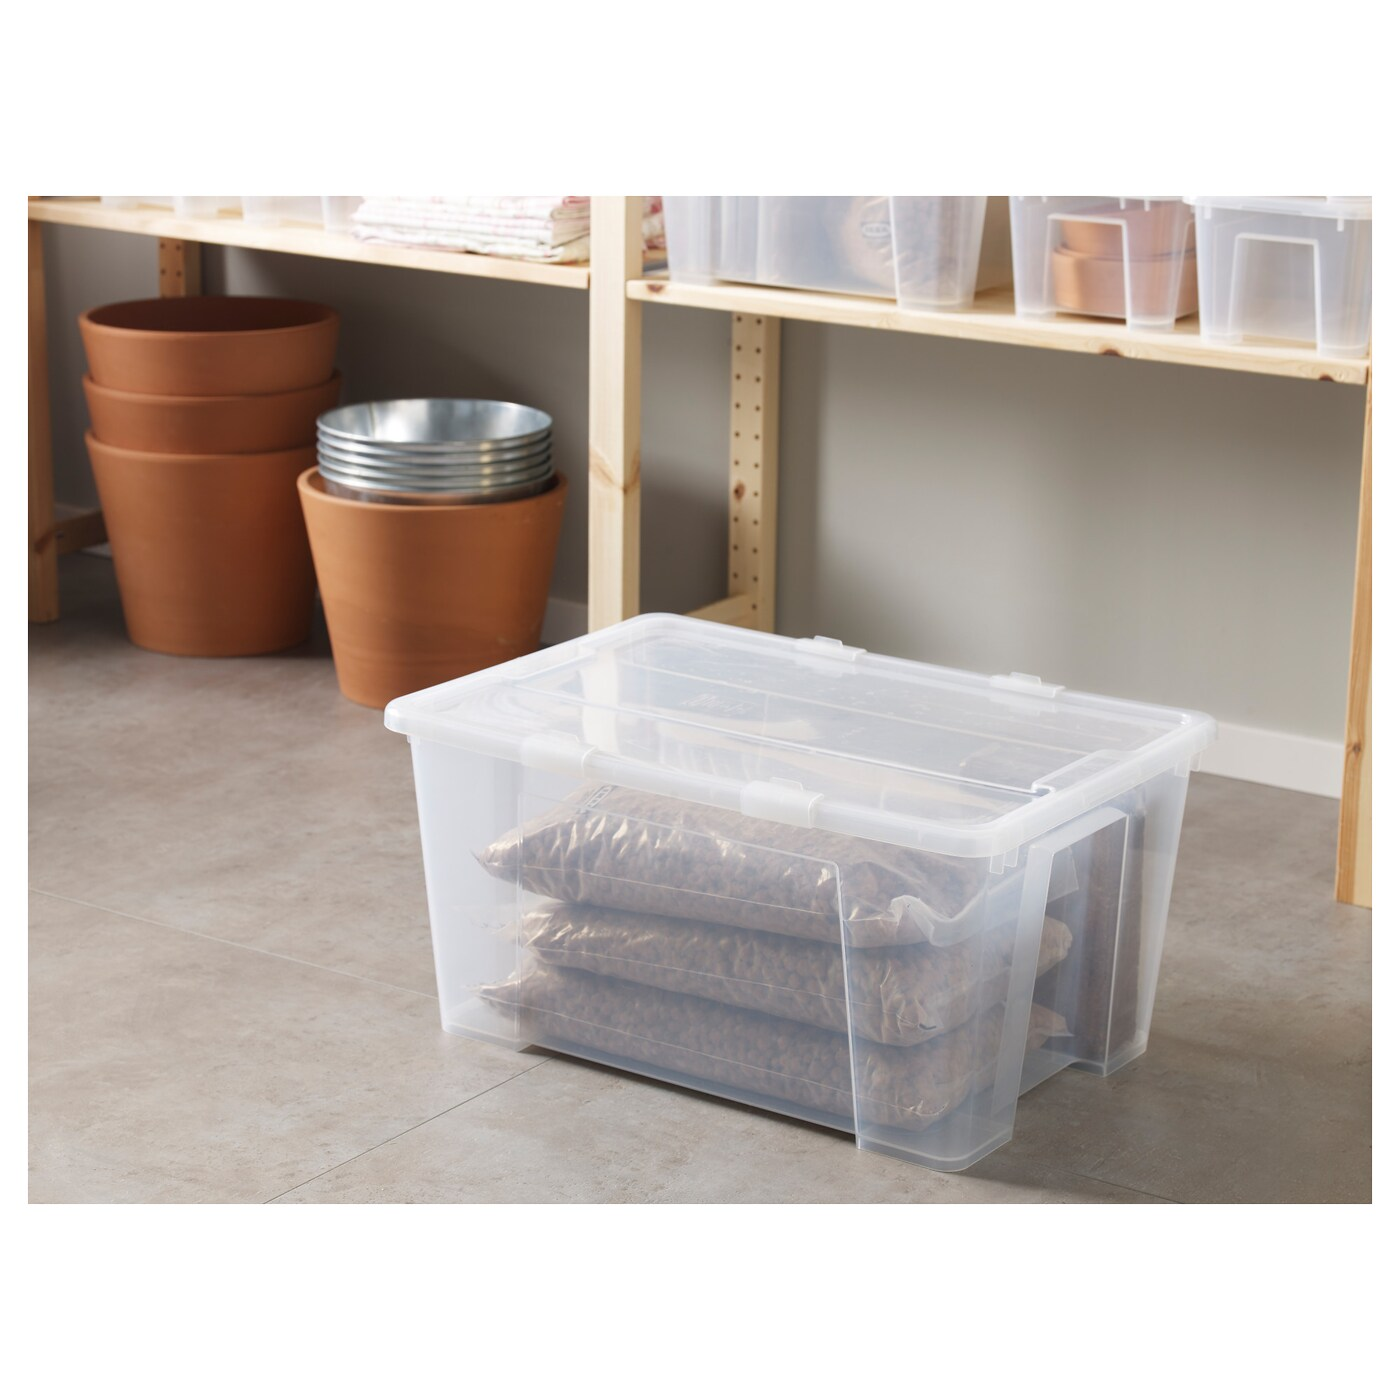 Wonderful IKEA SAMLA Box With Lid The Lid Protects The Contents And Makes The Box  Stackable.